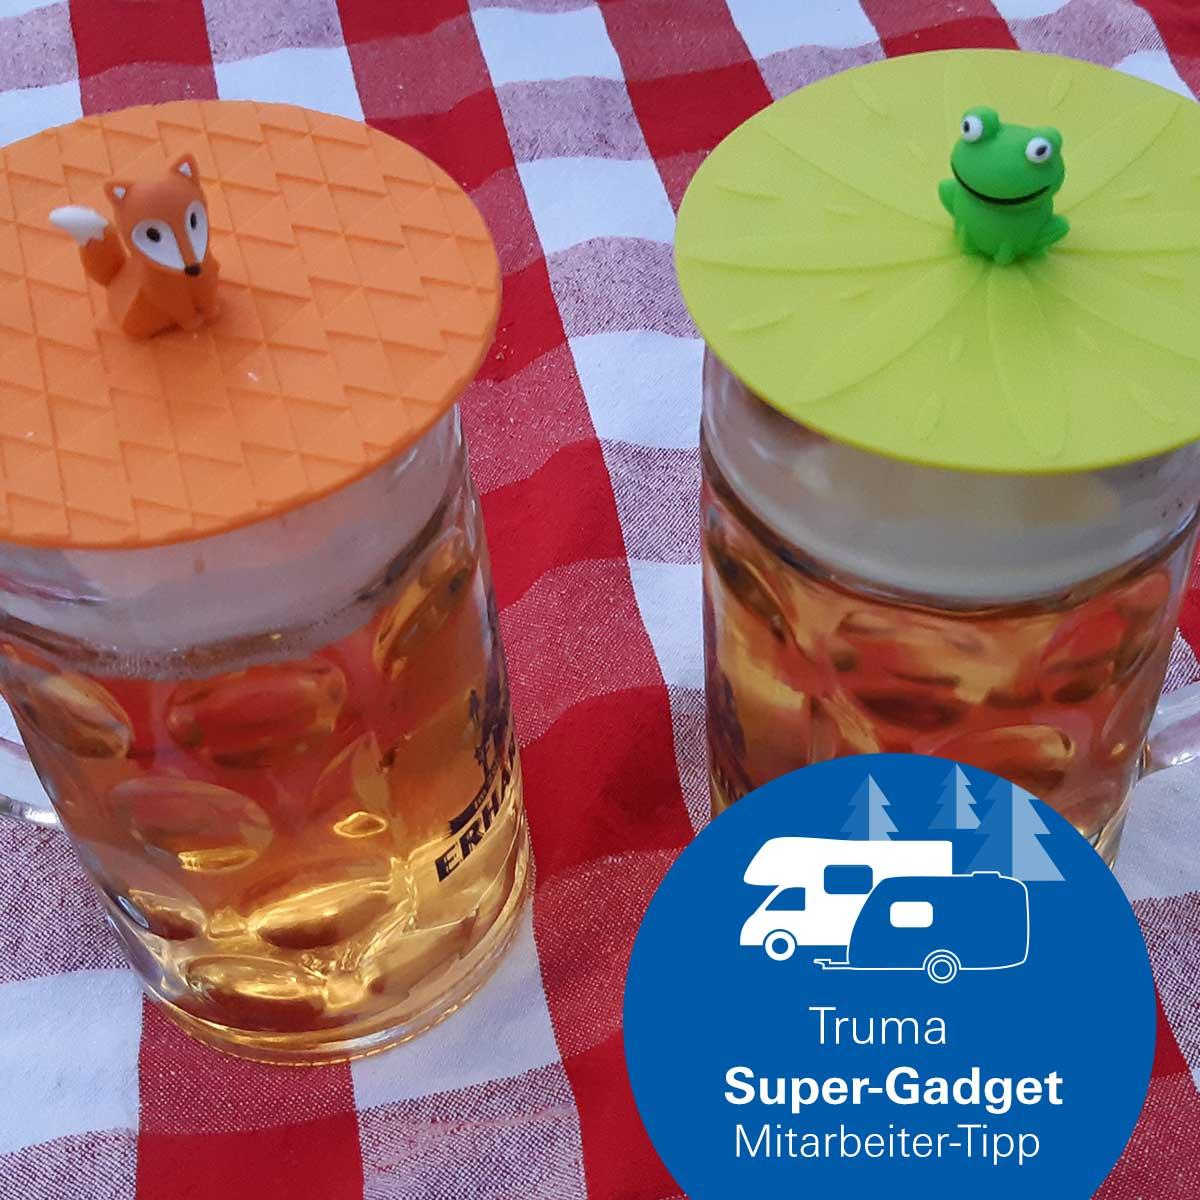 Truma Super Gadget lid for mug or glass